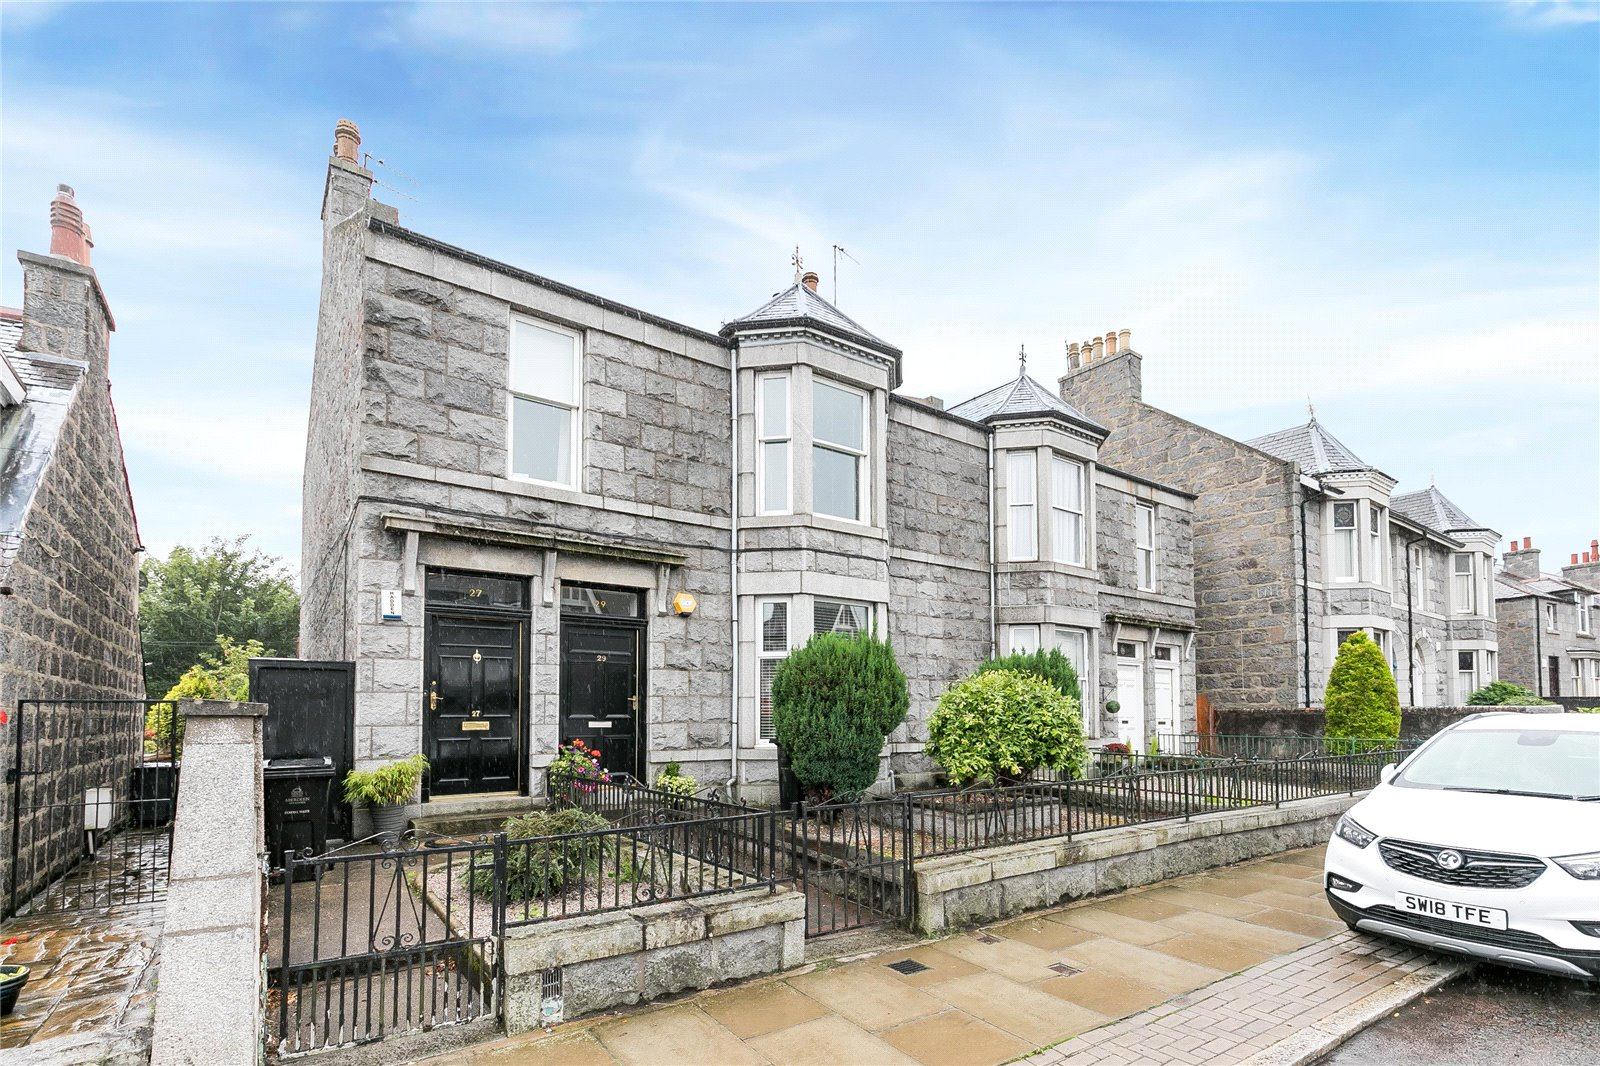 Our latest properties for sale and to let (30th August 2018)